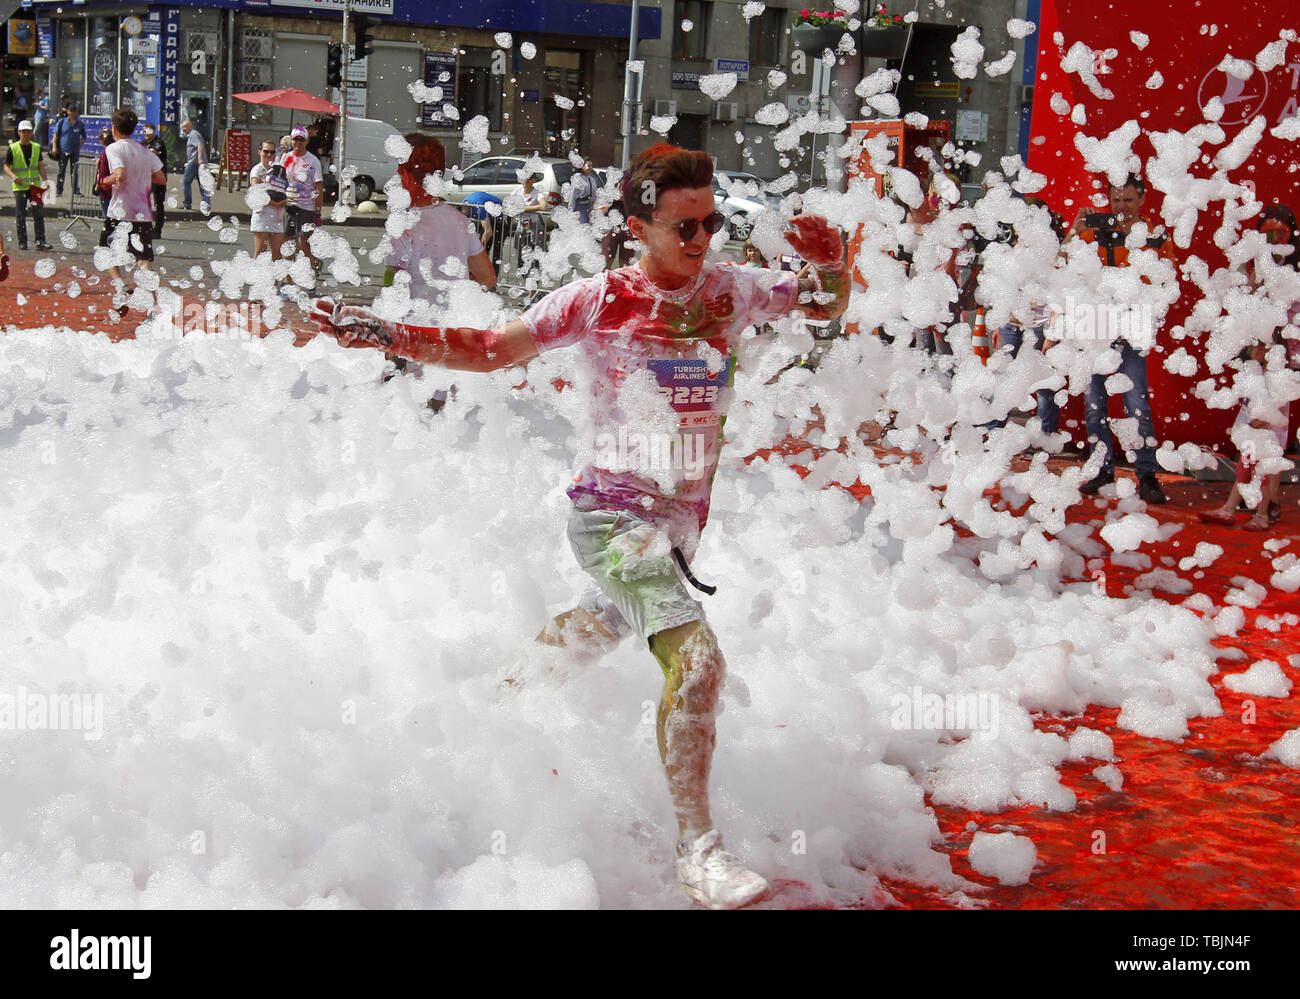 Kiev, Ukraine. 2nd June, 2019. A participant runs through the foam during the ''Kyiv Color Run'' in Kiev, Ukraine, on 2 June 2019. From the first event in the United States in January 2012 The Color Run has since spread across the globe leaving a trail of color and happy runners. Credit: Serg Glovny/ZUMA Wire/Alamy Live News - Stock Image